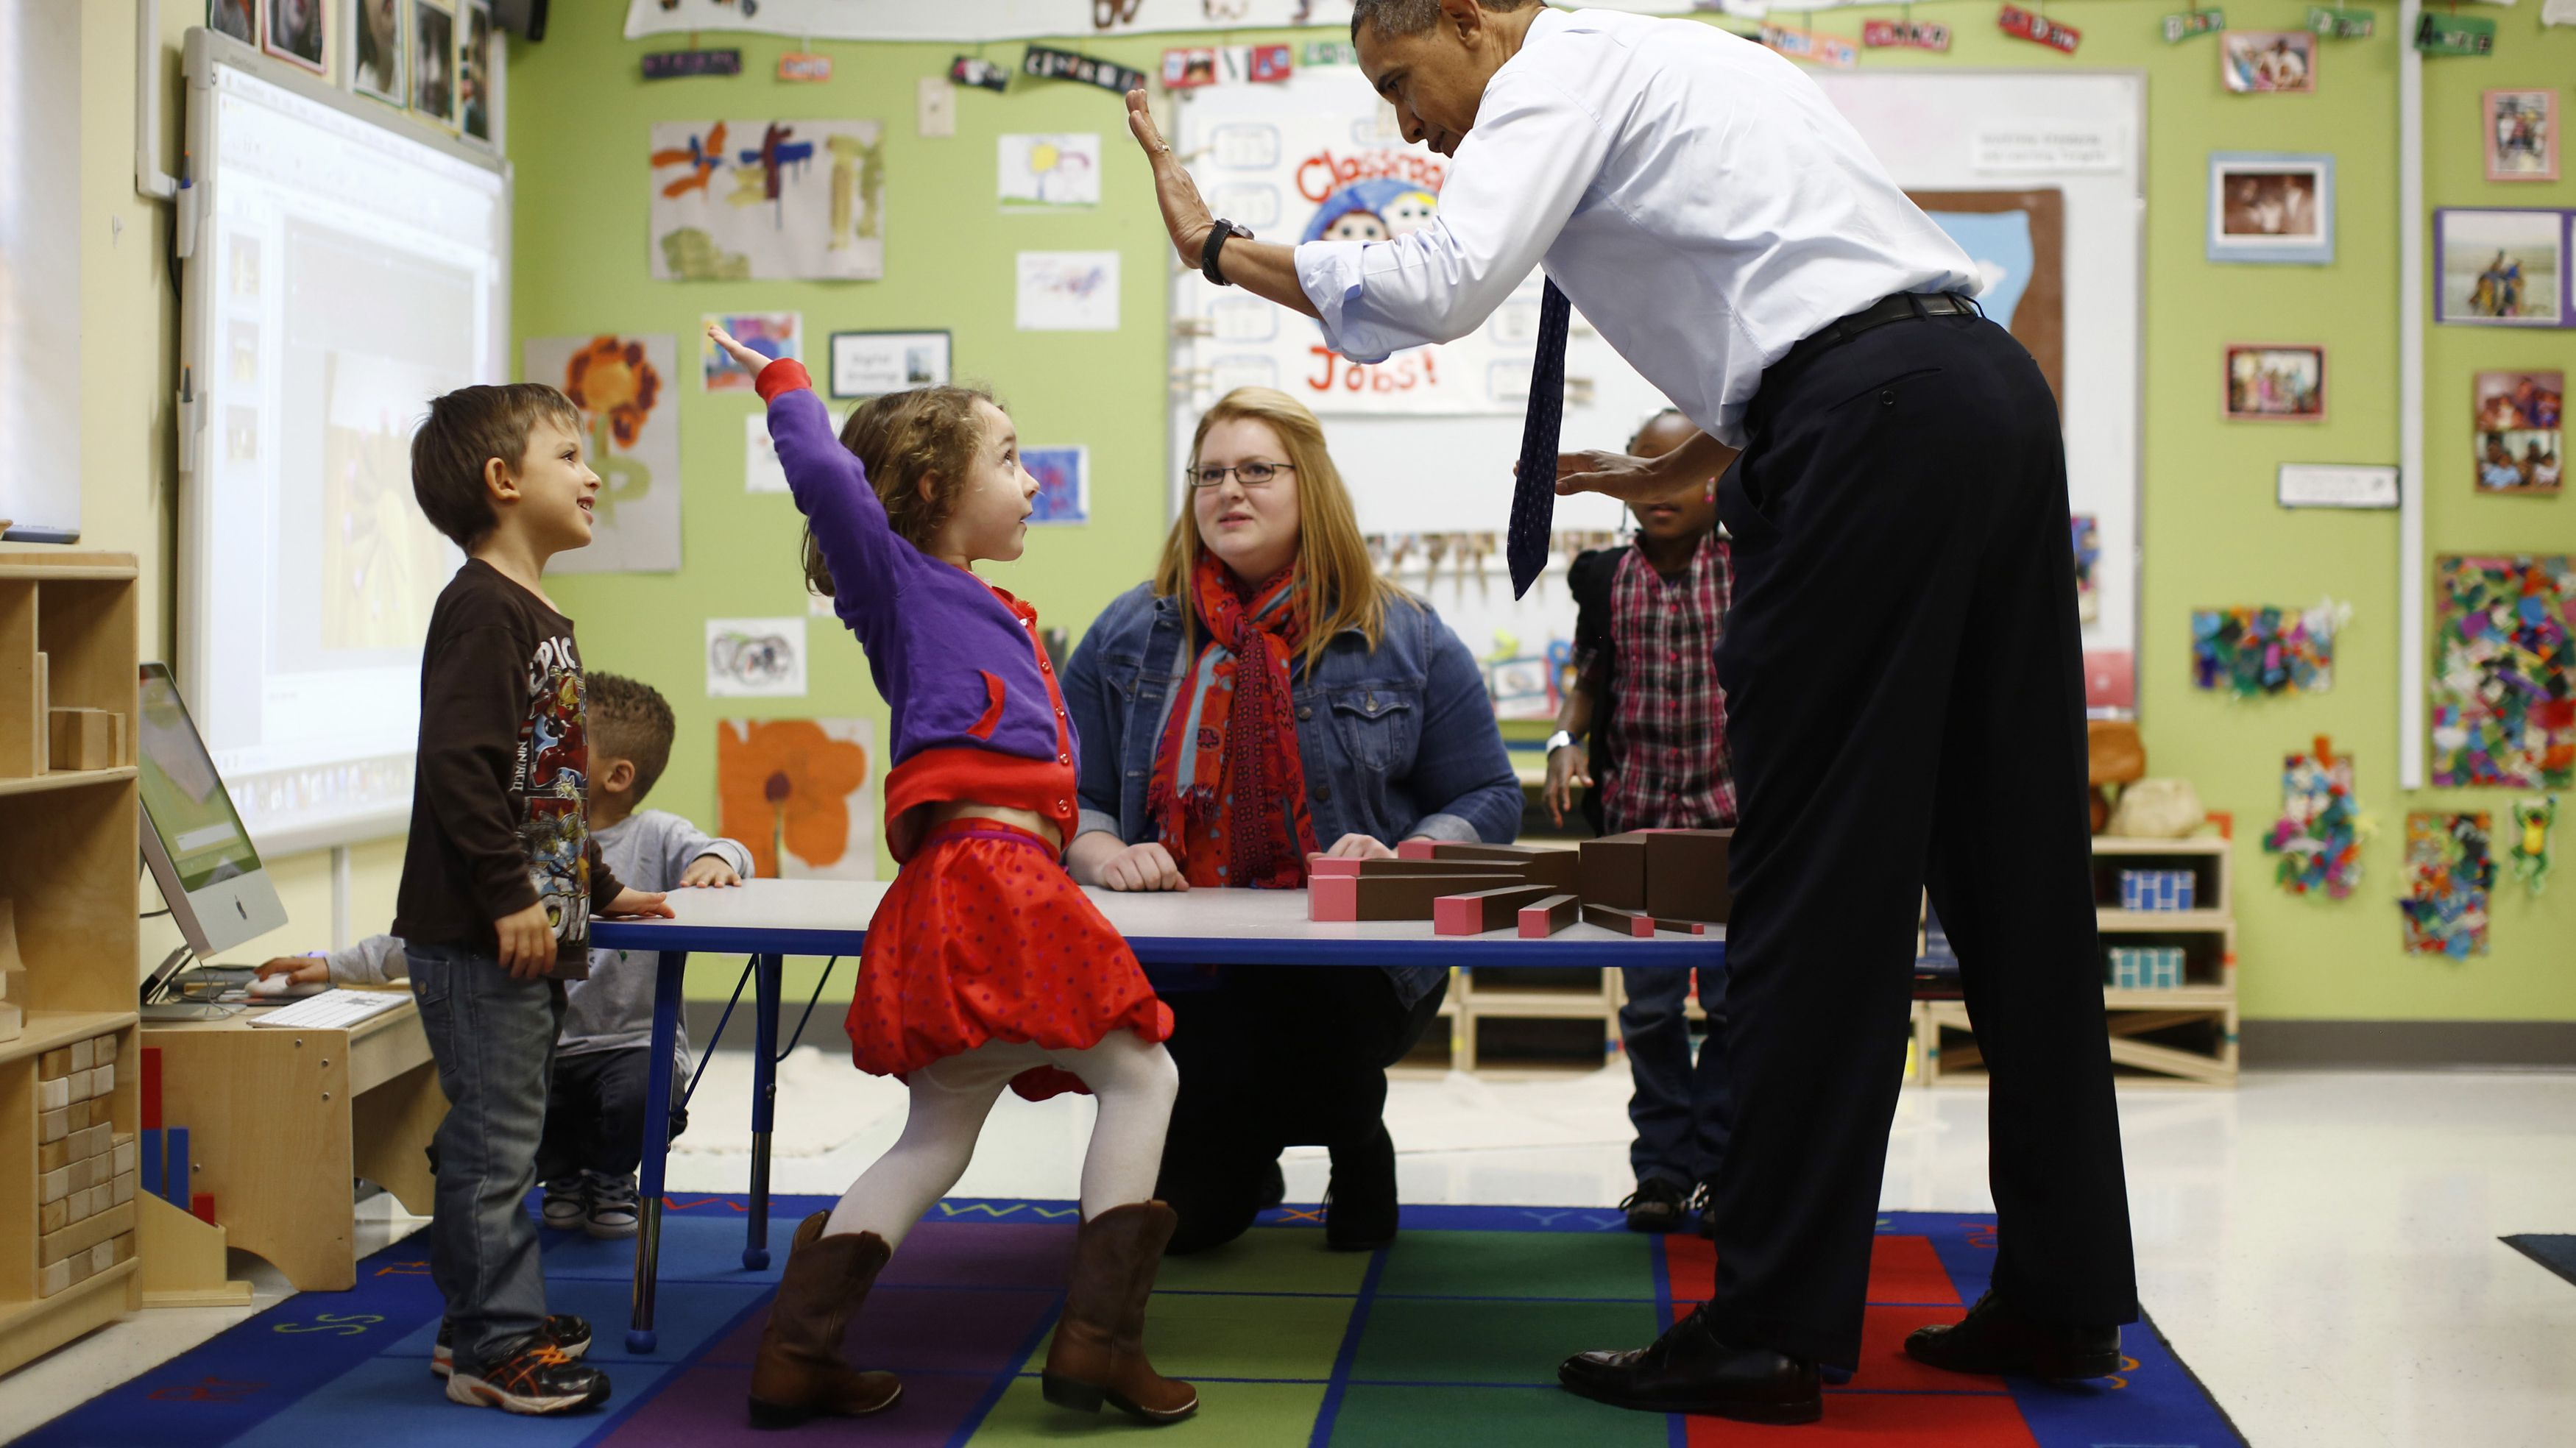 english korean chinese japanese math counting arithmetic achievement performance studying students children kids U.S. President Barack Obama high-fives children in a pre-kindergarten classroom at College Heights early childhood learning center in Decatur February 14, 2013. Obama flew to Georgia to push his plan to ensure high-quality preschool, unveiled during his State of the Union address this week. REUTERS/Jason Reed